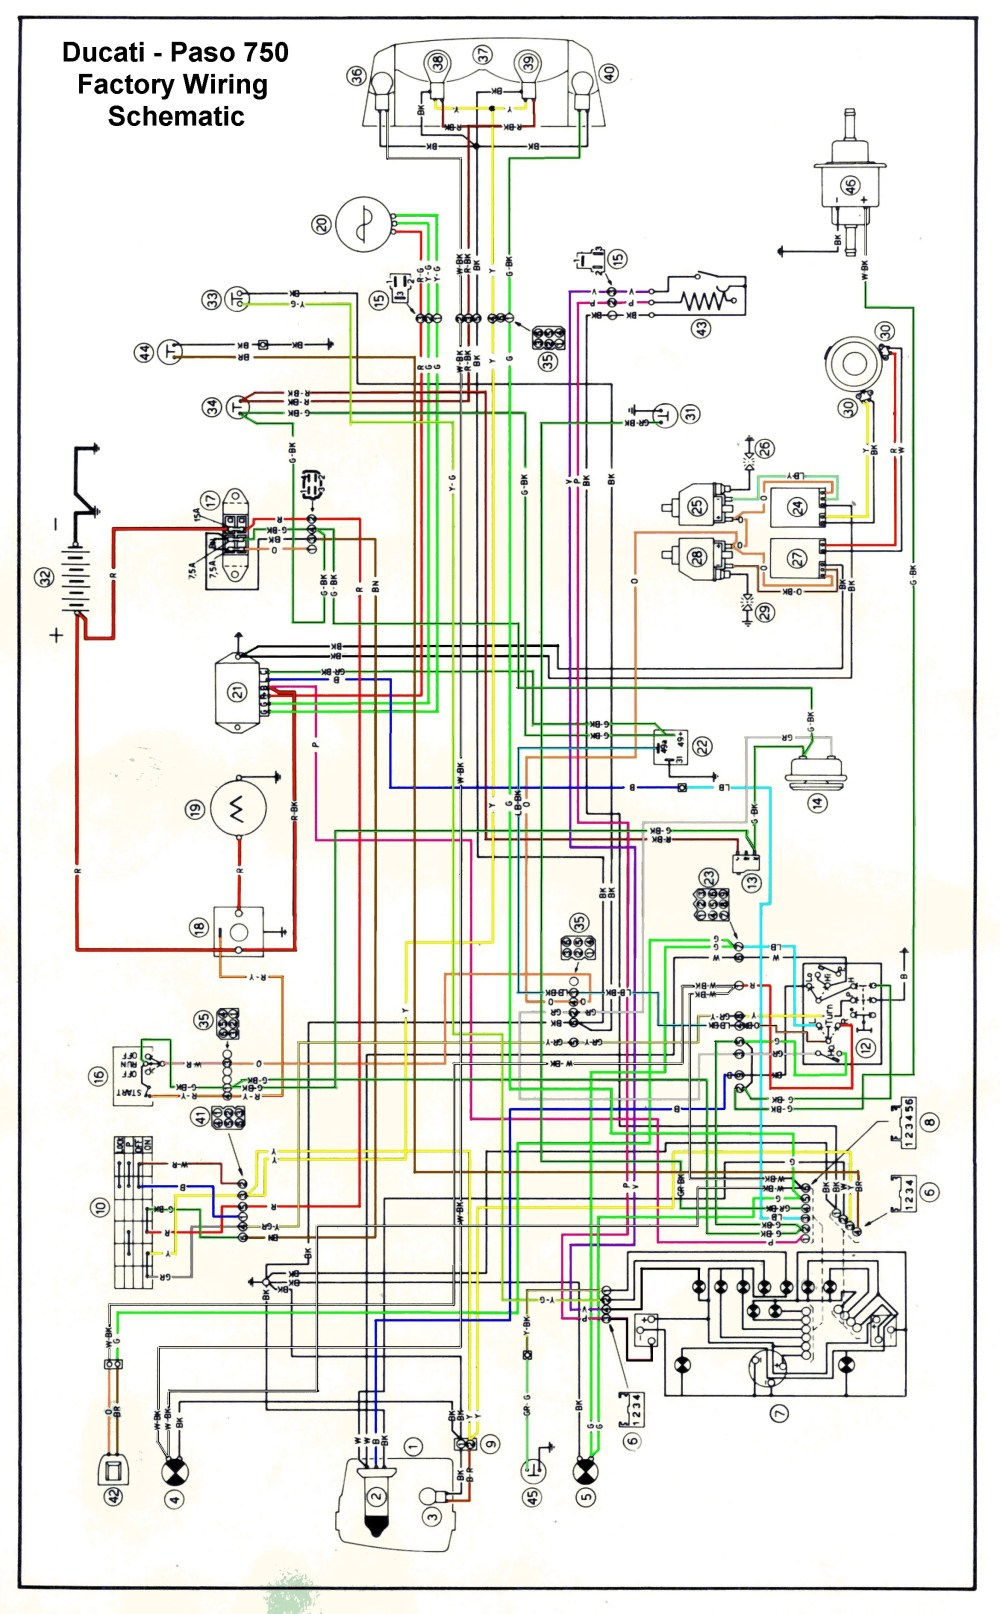 medium resolution of ducati ac wiring diagrams box wiring diagram rh 49 pfotenpower ev de ducati ignition wiring diagram ducati 900ss wiring diagram